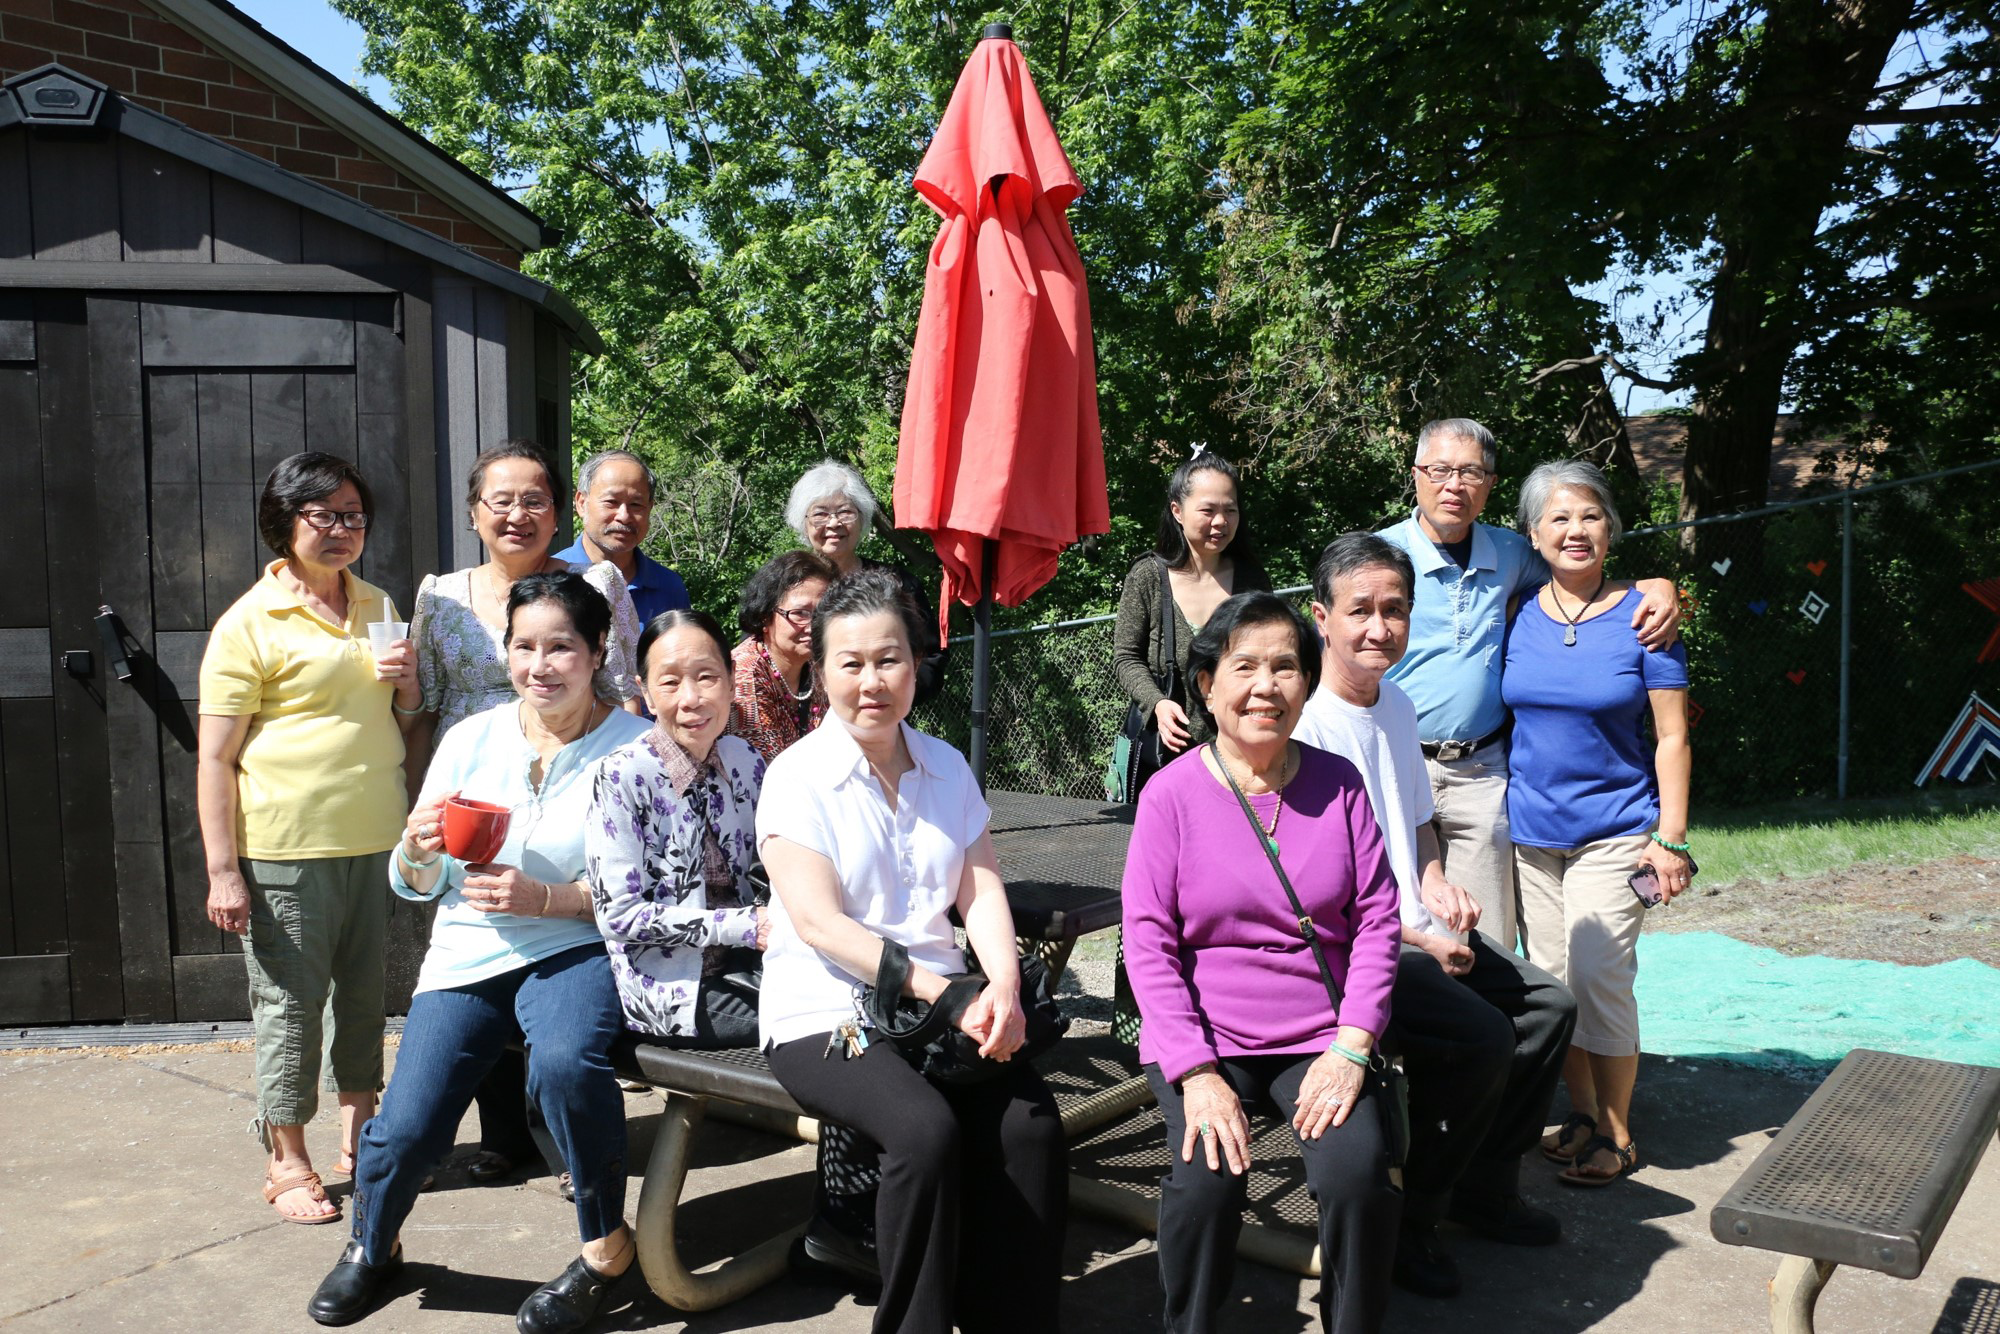 Members pose at a table near a donated shed outside the Wilder Center for Social Healing.